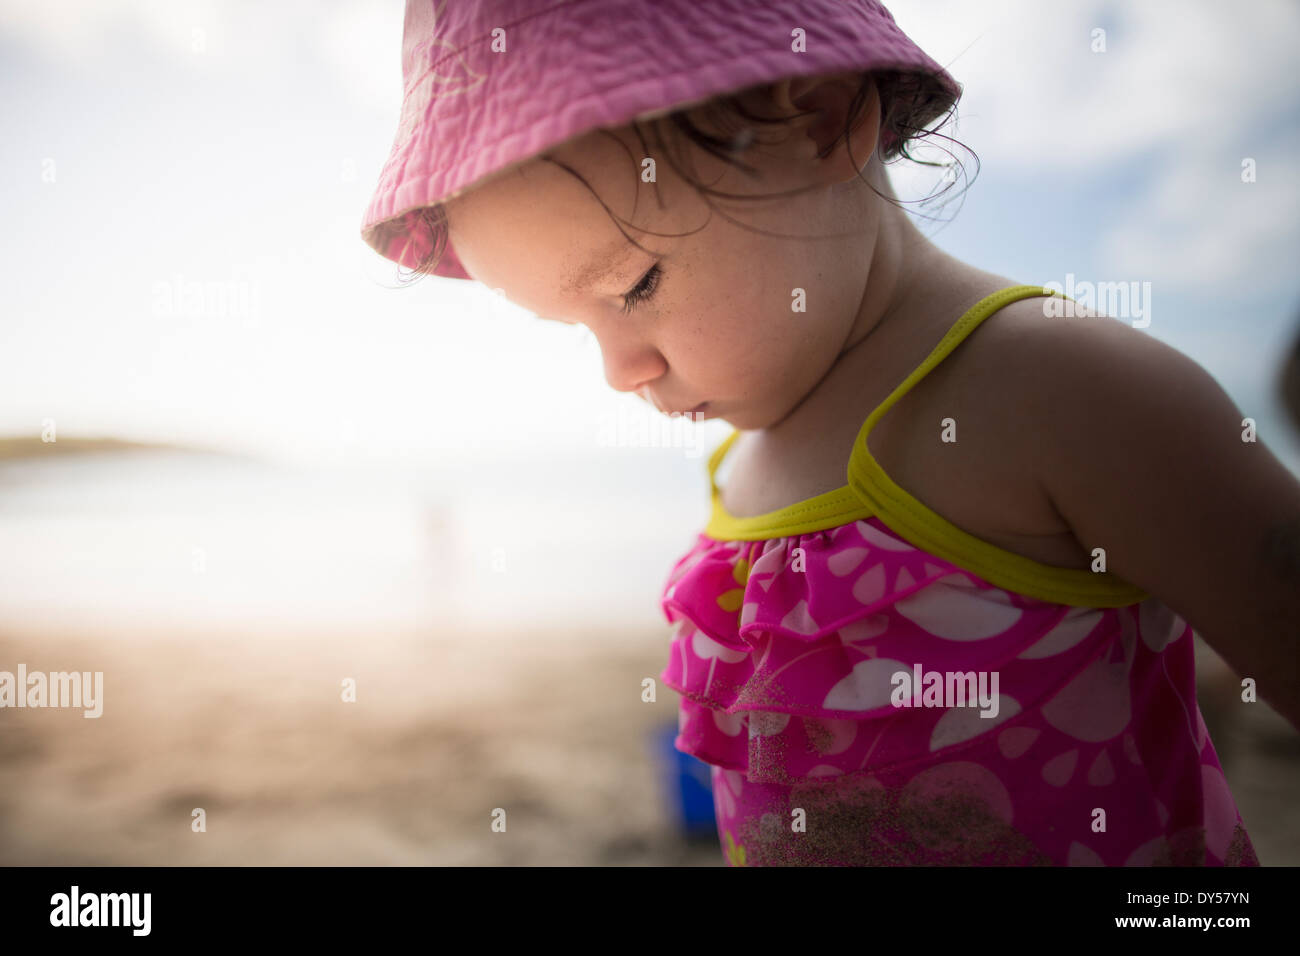 Baby playing on sandy beach - Stock Image